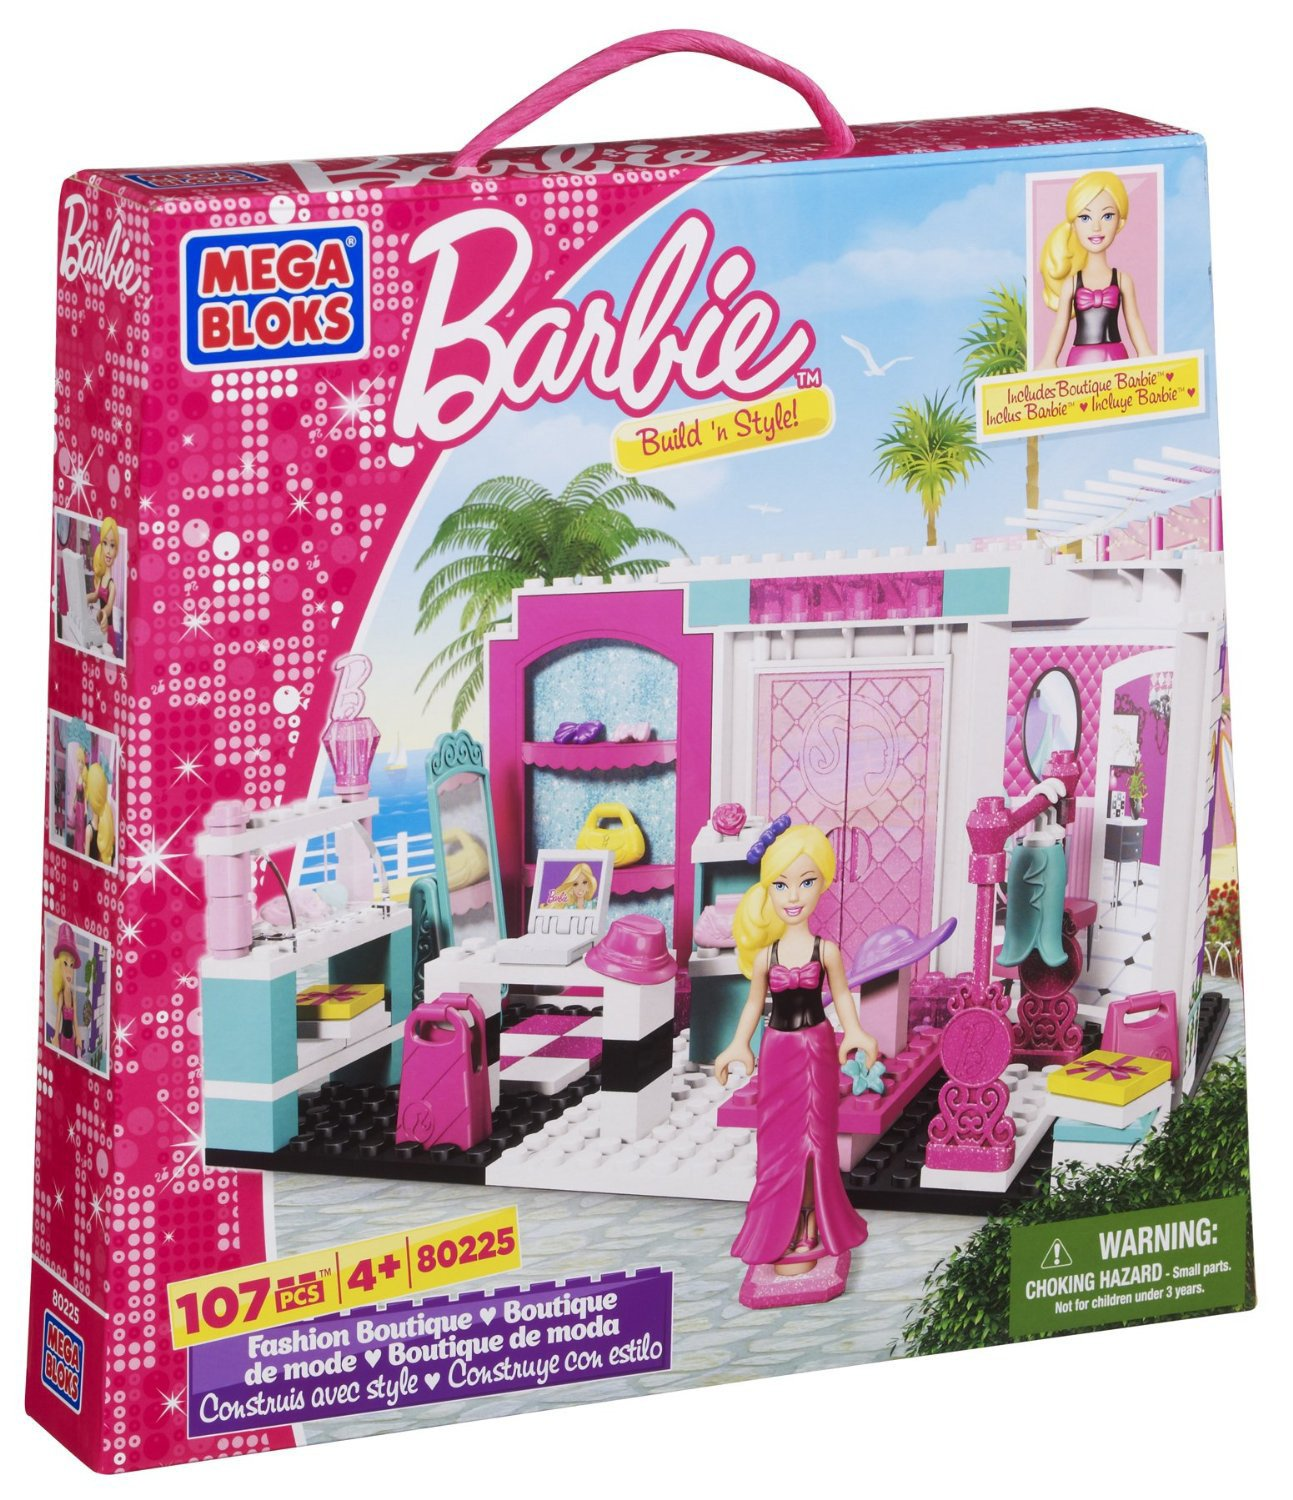 Mega Bloks Barbie Fashion Boutique Barbie Doll House Like Lego Amazon com Mega Bloks Barbie